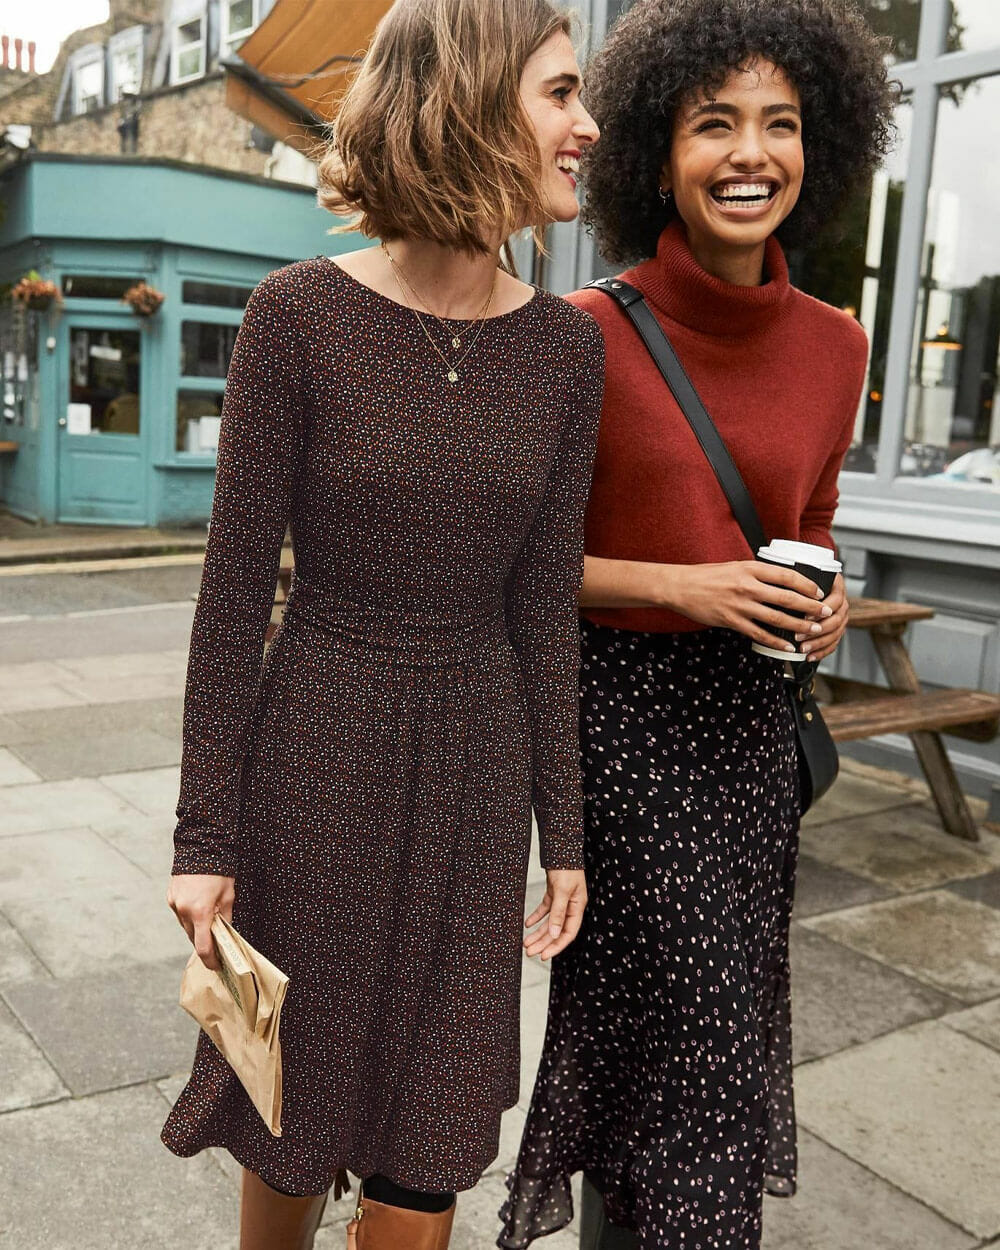 Boden ethical clothing brand